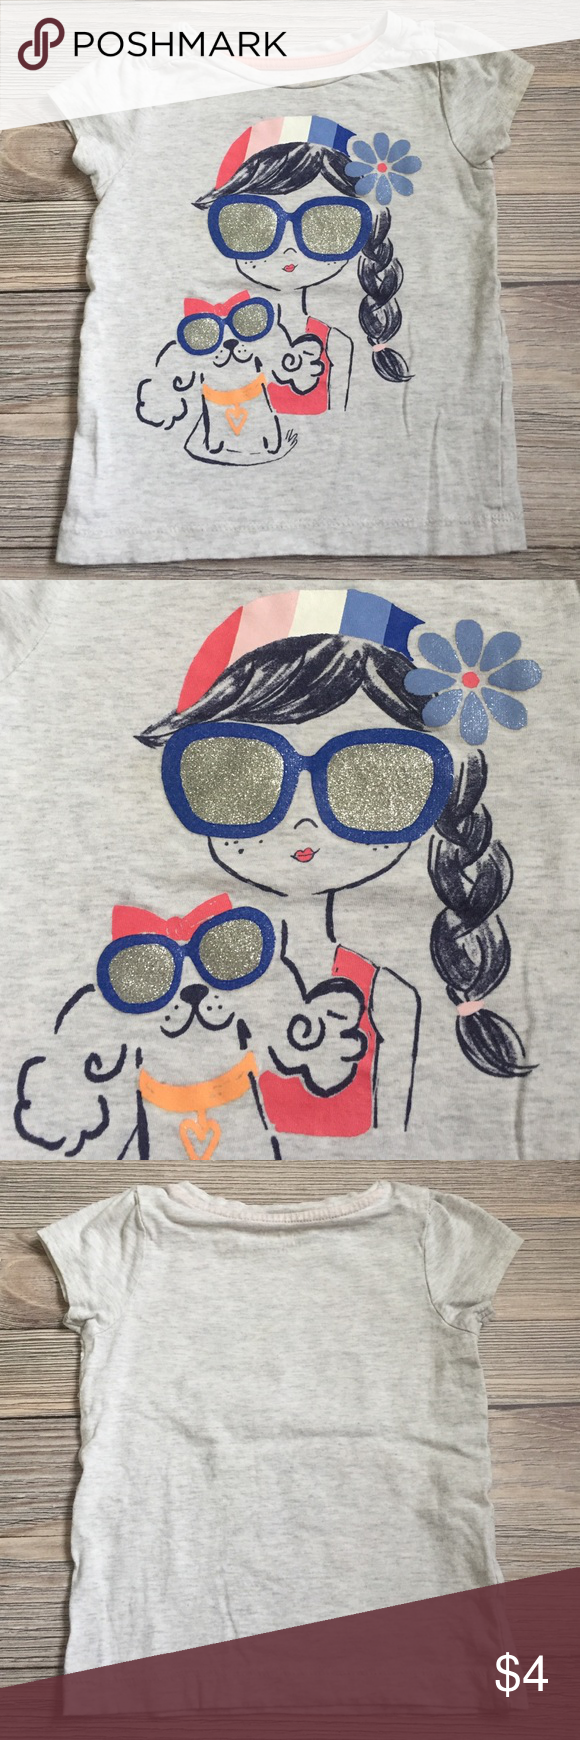 Gymboree Girls Tee Gymboree Girls Tee. Slight discoloration at neckline.  Smoke free/ pet free home. Gymboree Shirts & Tops Tees - Short Sleeve